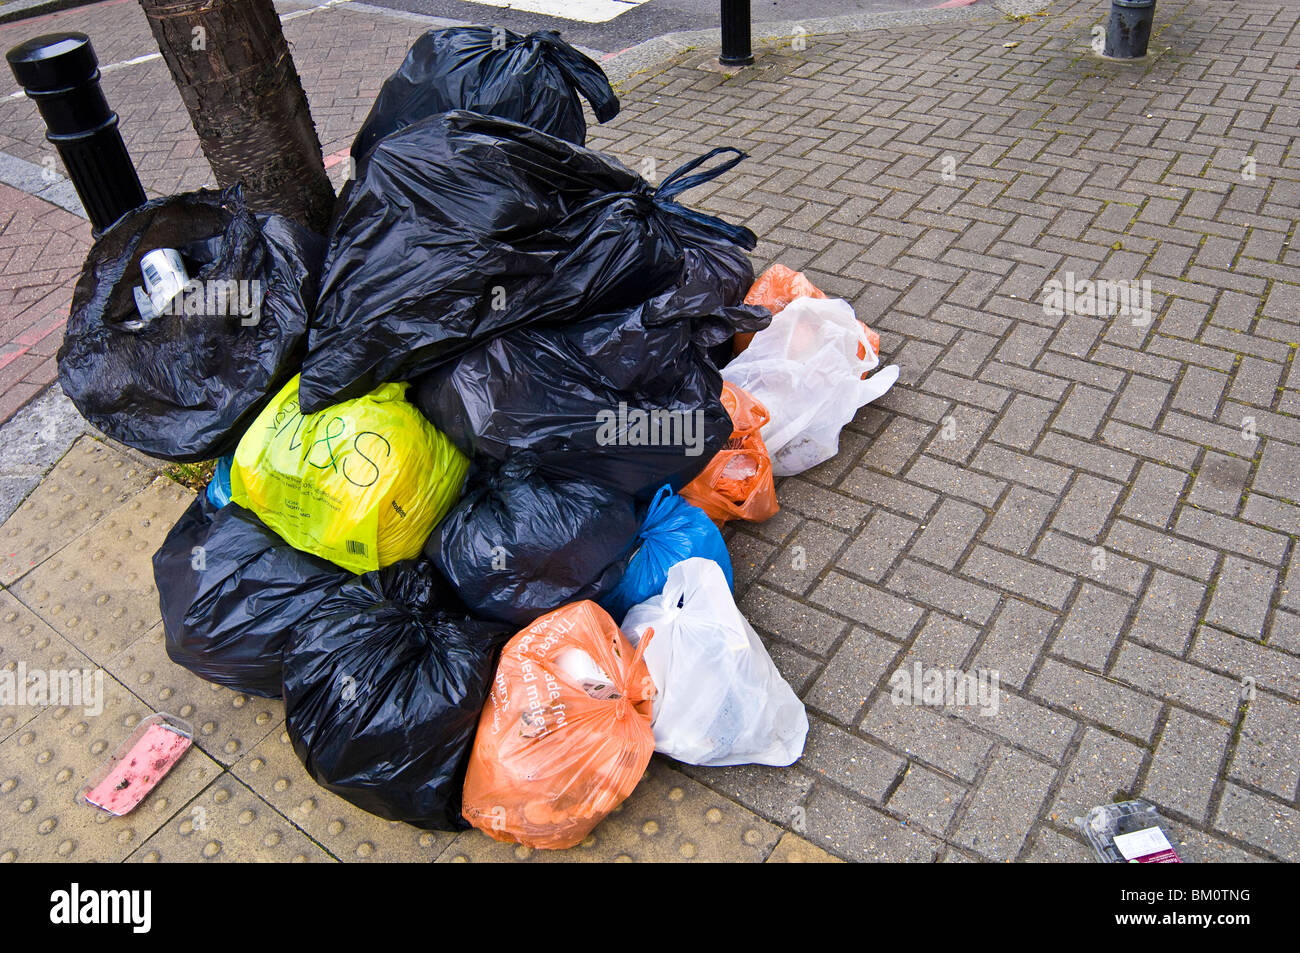 Pile of rubbish bags in residential area - Stock Image